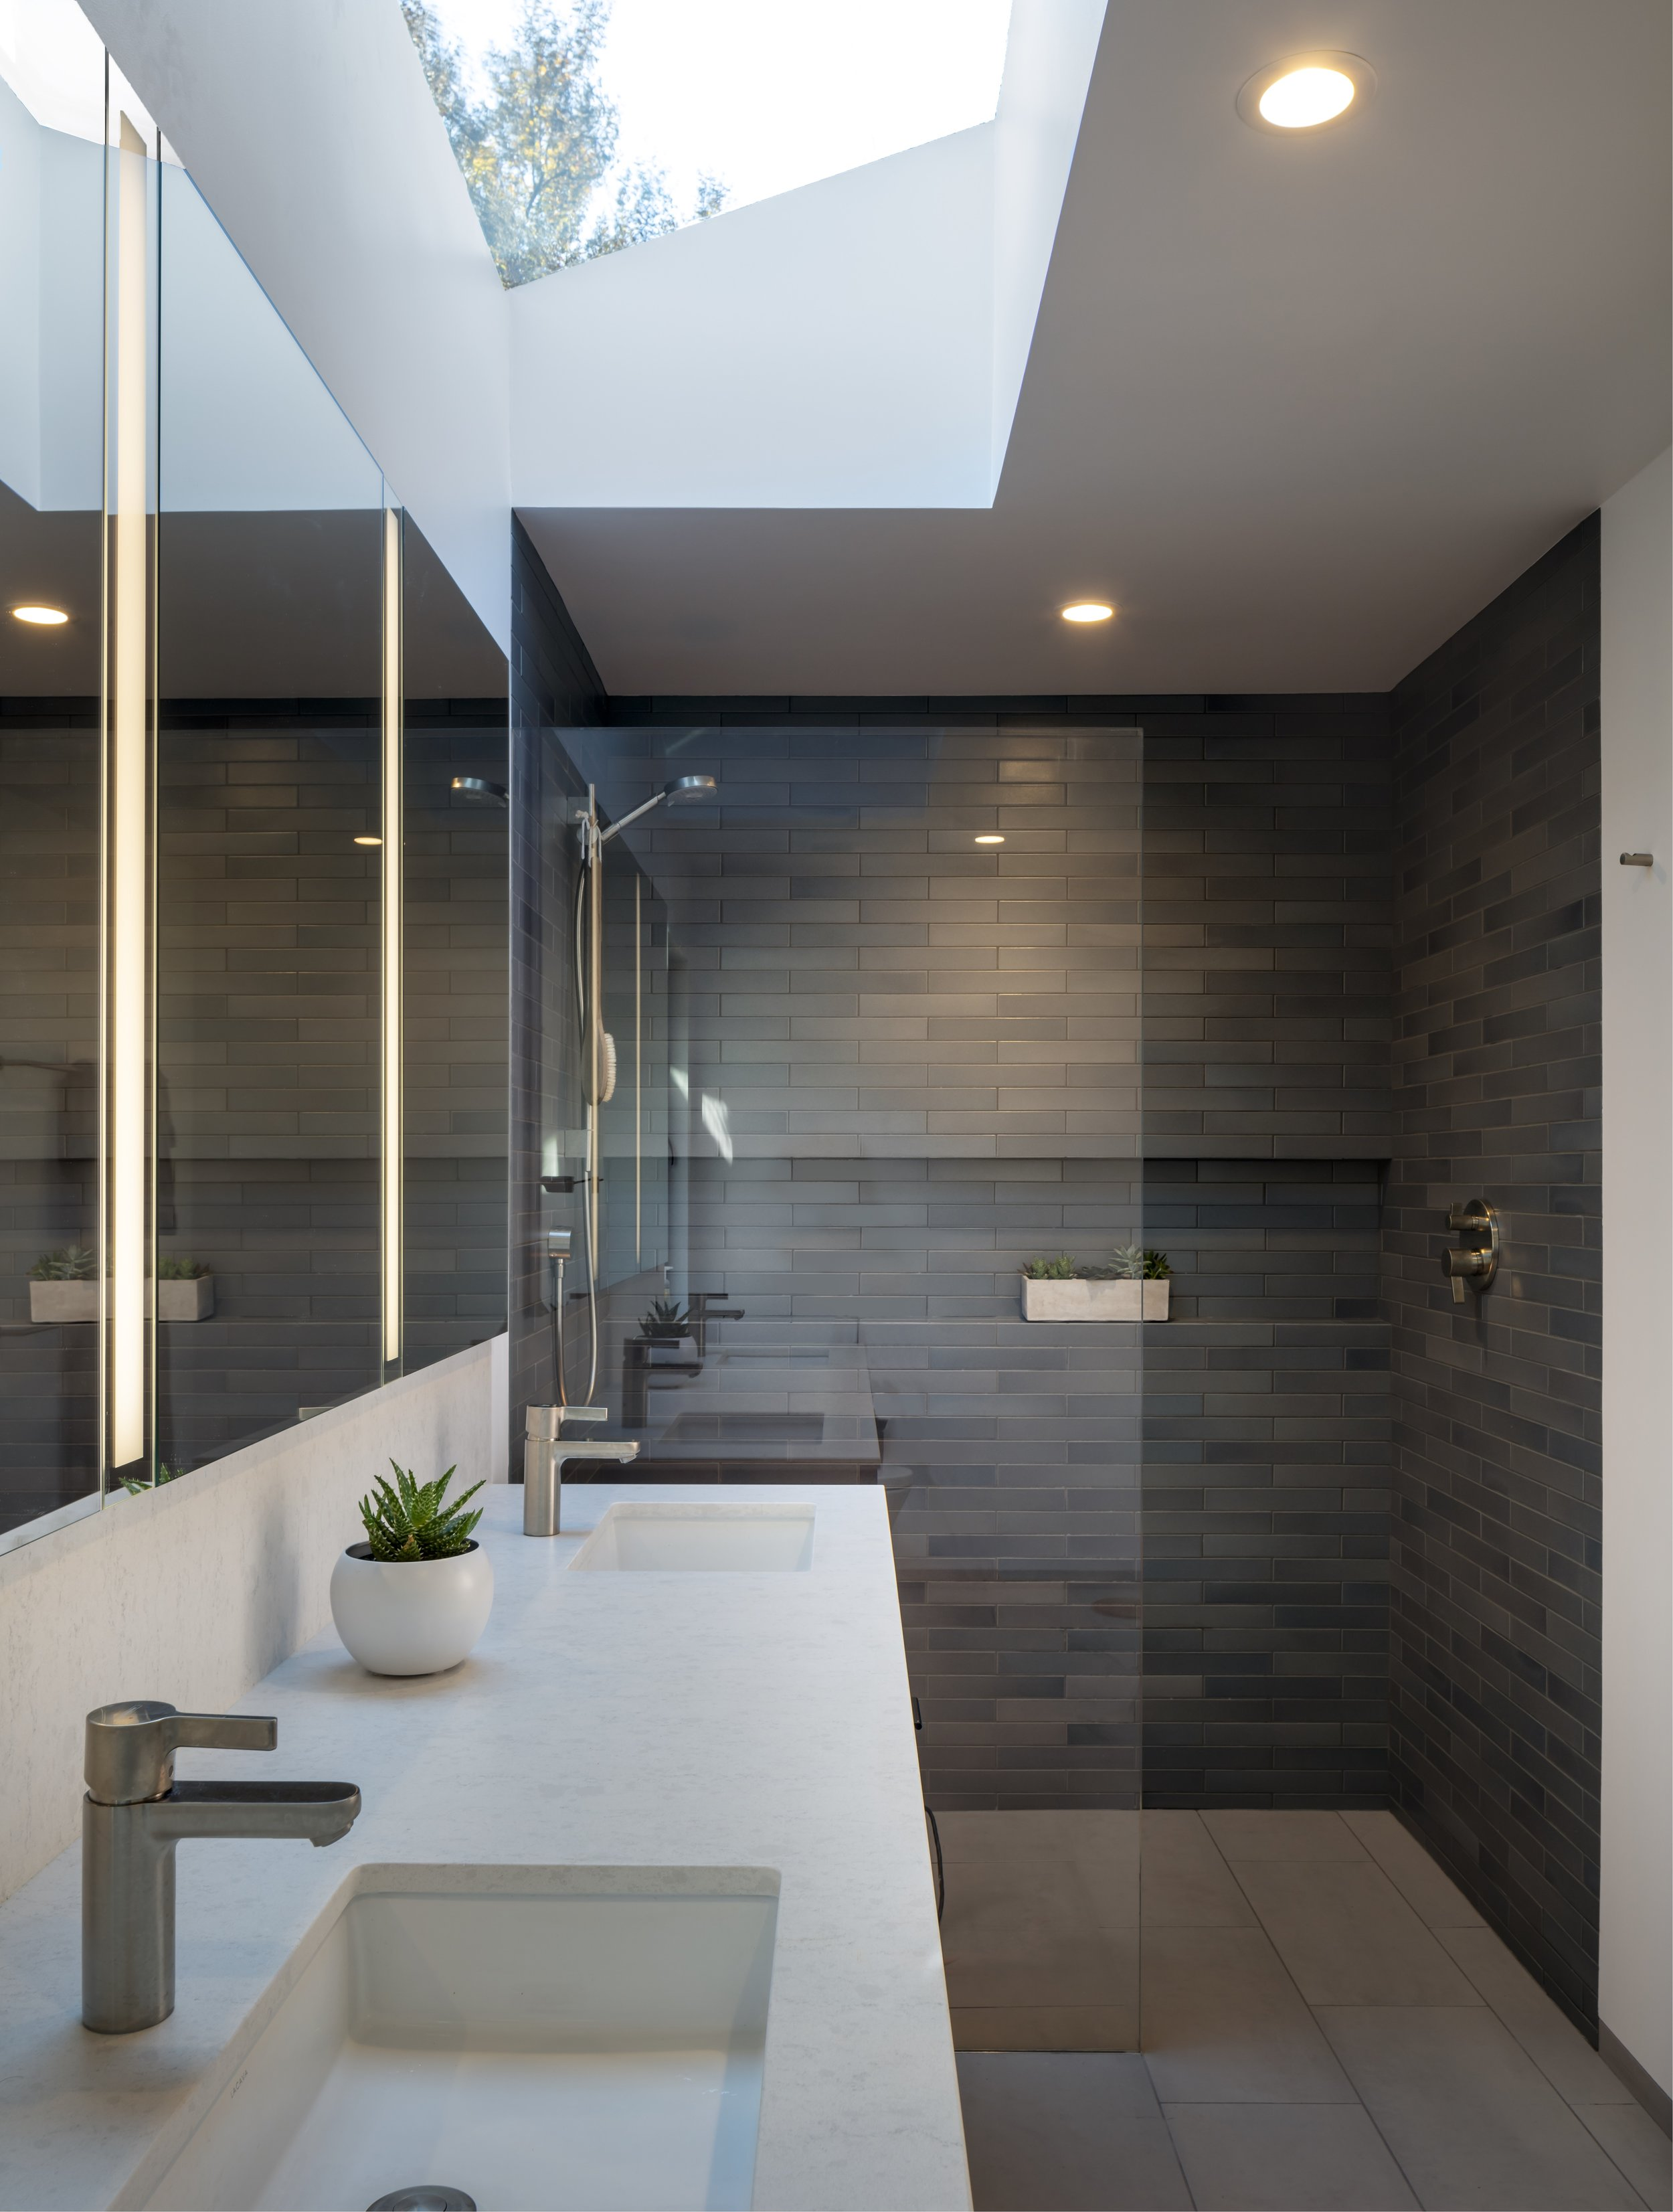 robsheal drive residence kitchen & bath